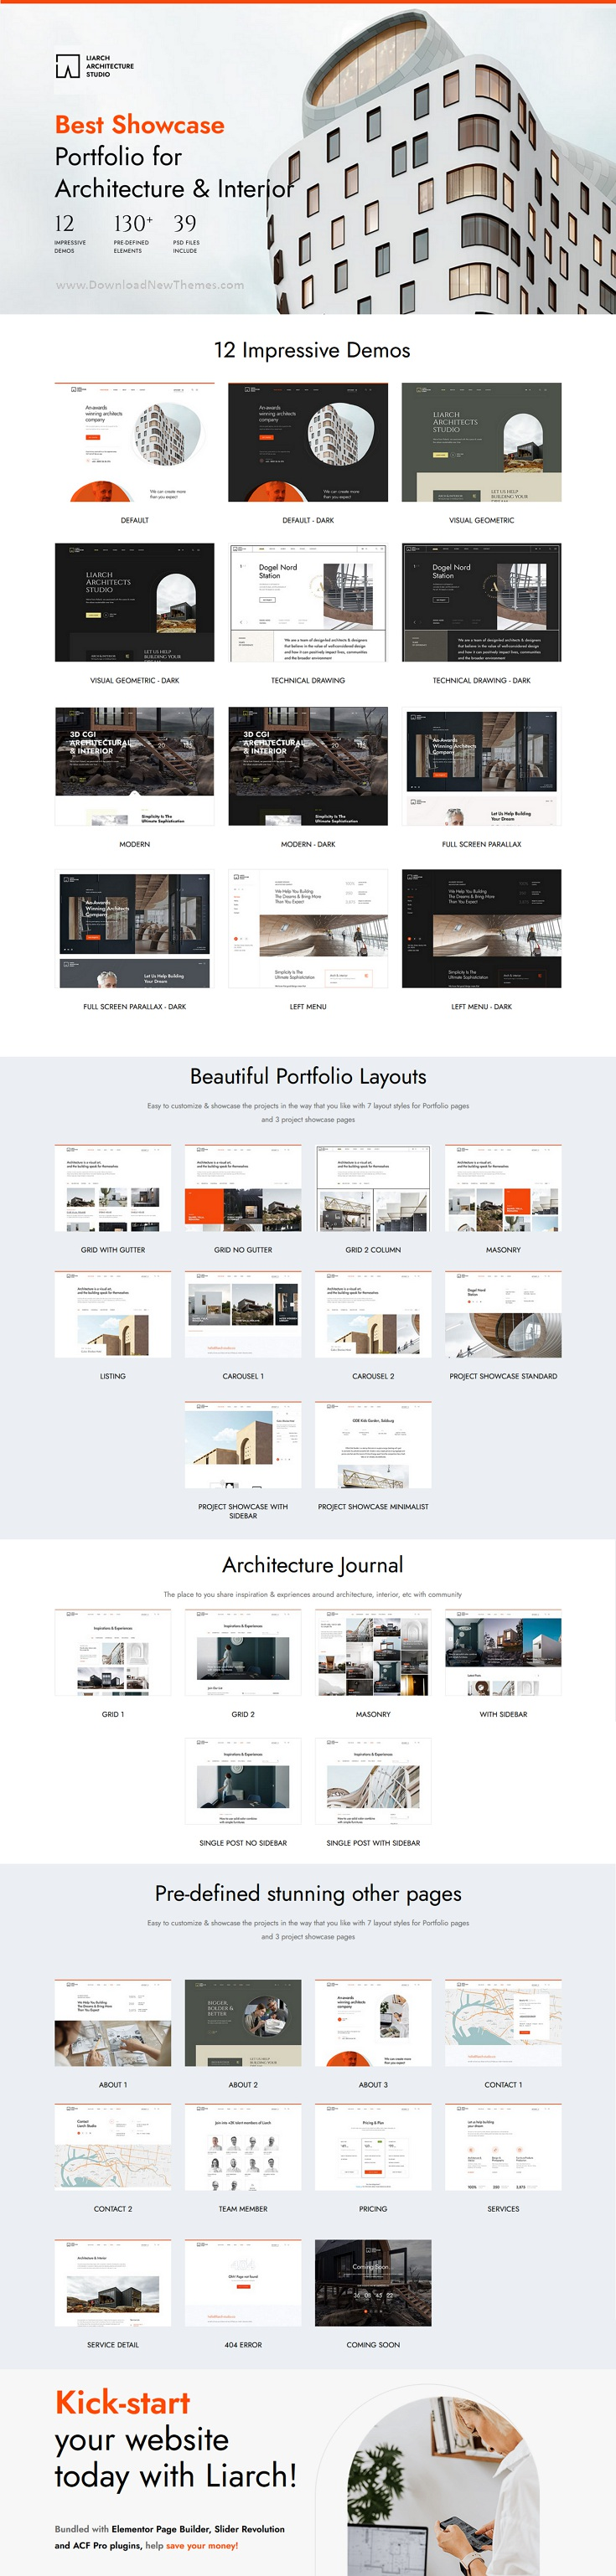 Architecture and Interior Bootstrap Template